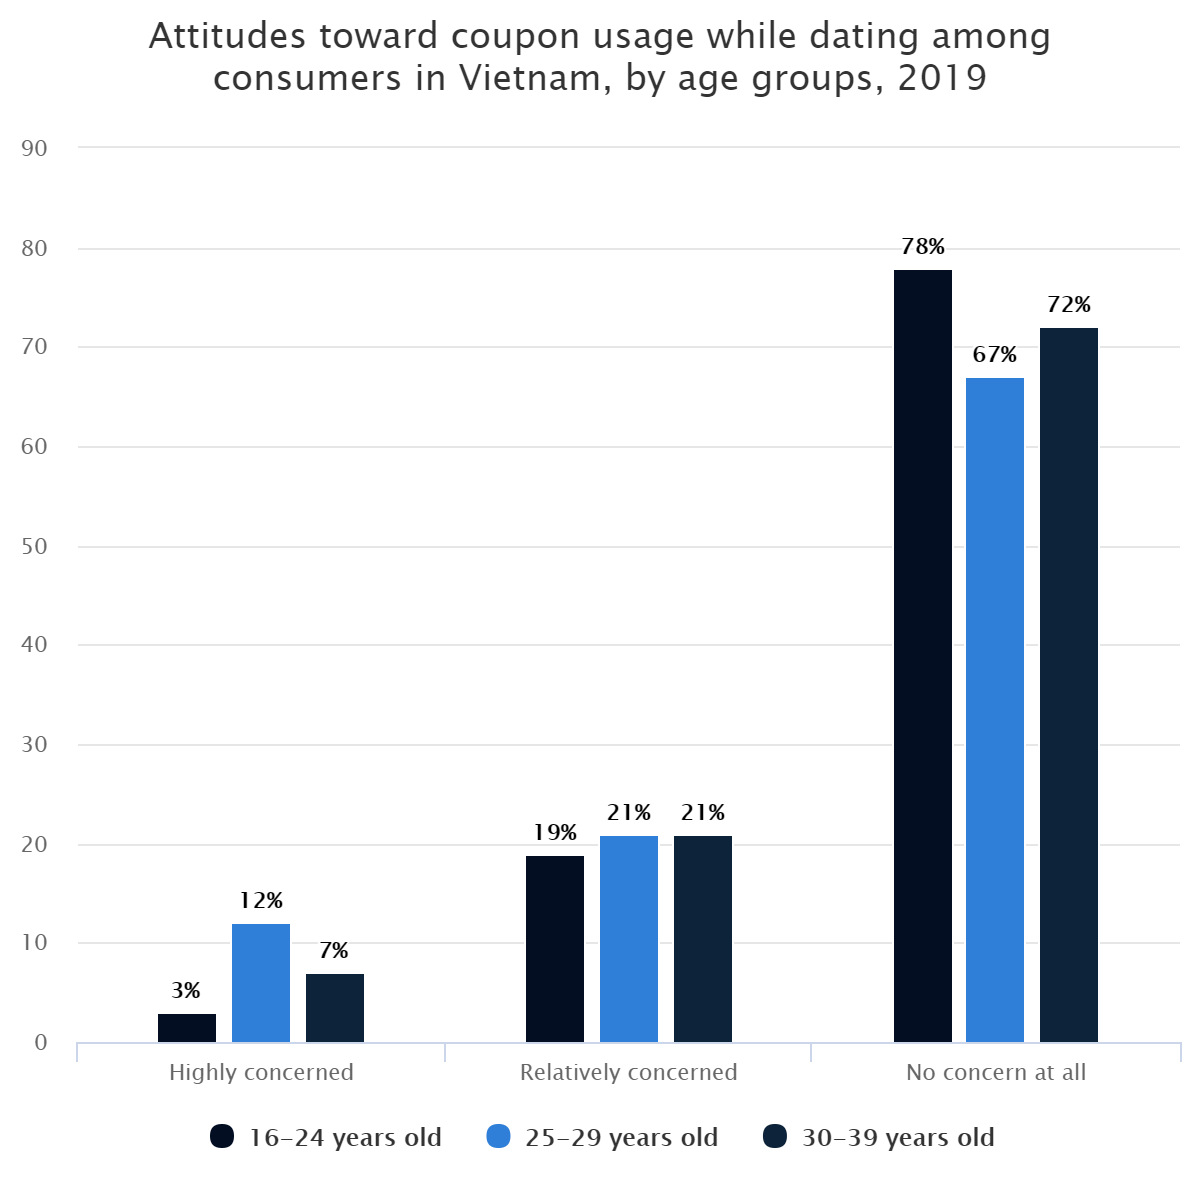 Attitudes toward coupon usage while dating among consumers in Vietnam, by age groups, 2019